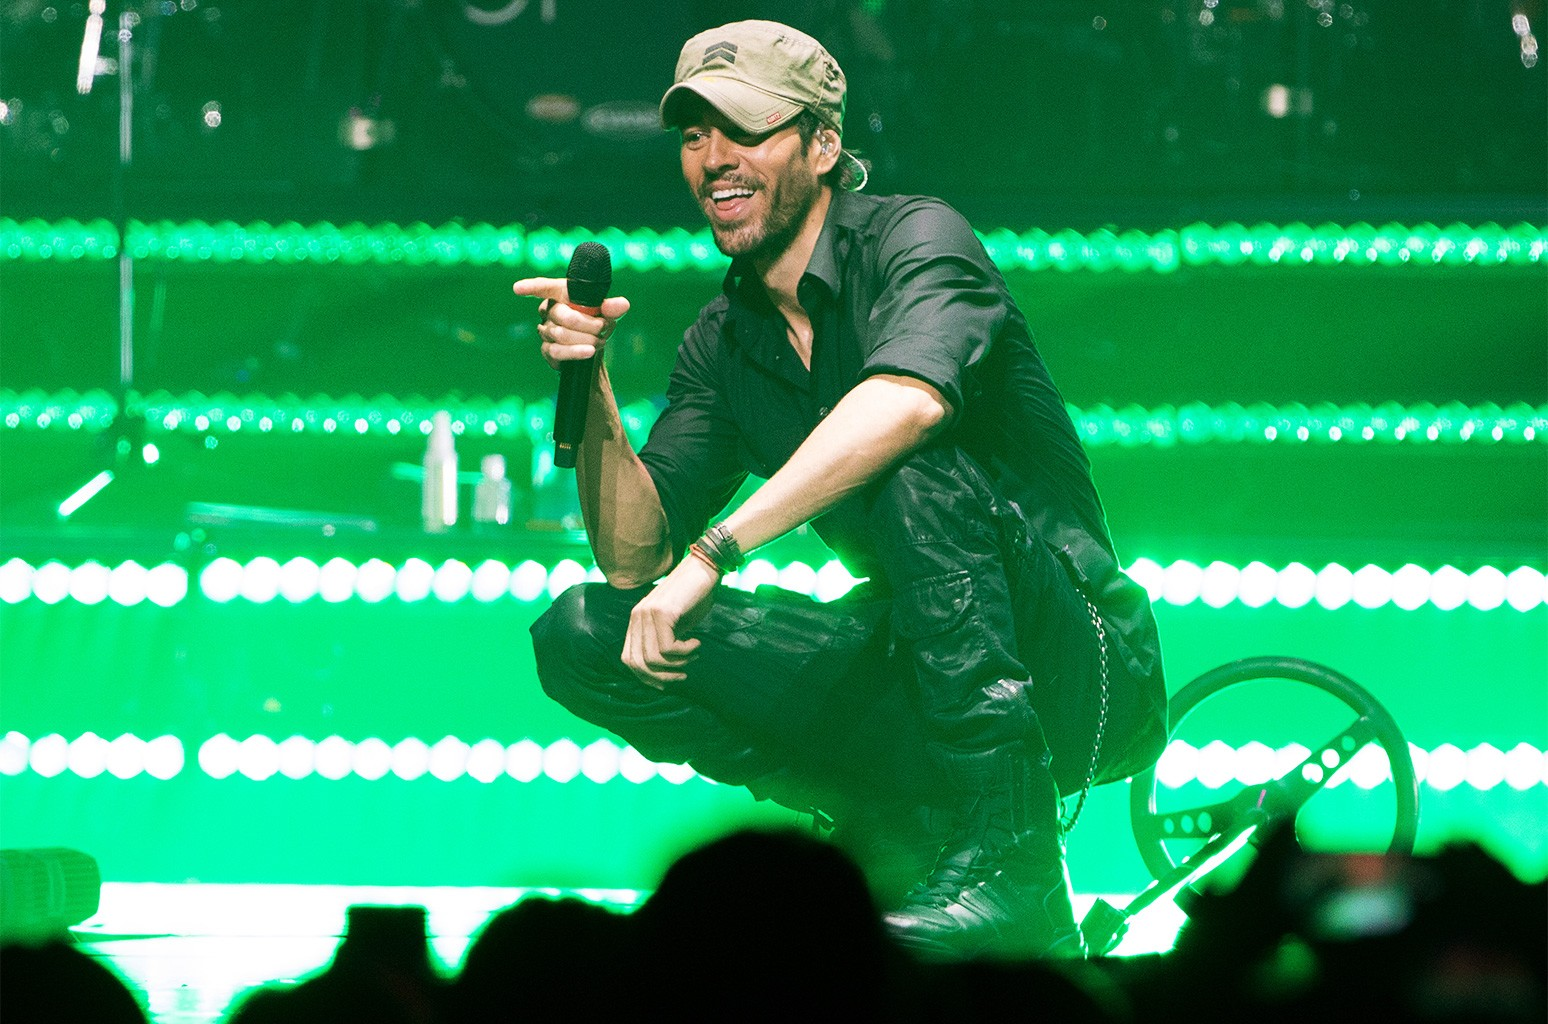 Enrique Iglesias performs on stage at the American Airlines Arena on June 23, 2017 in Miami, Florida.